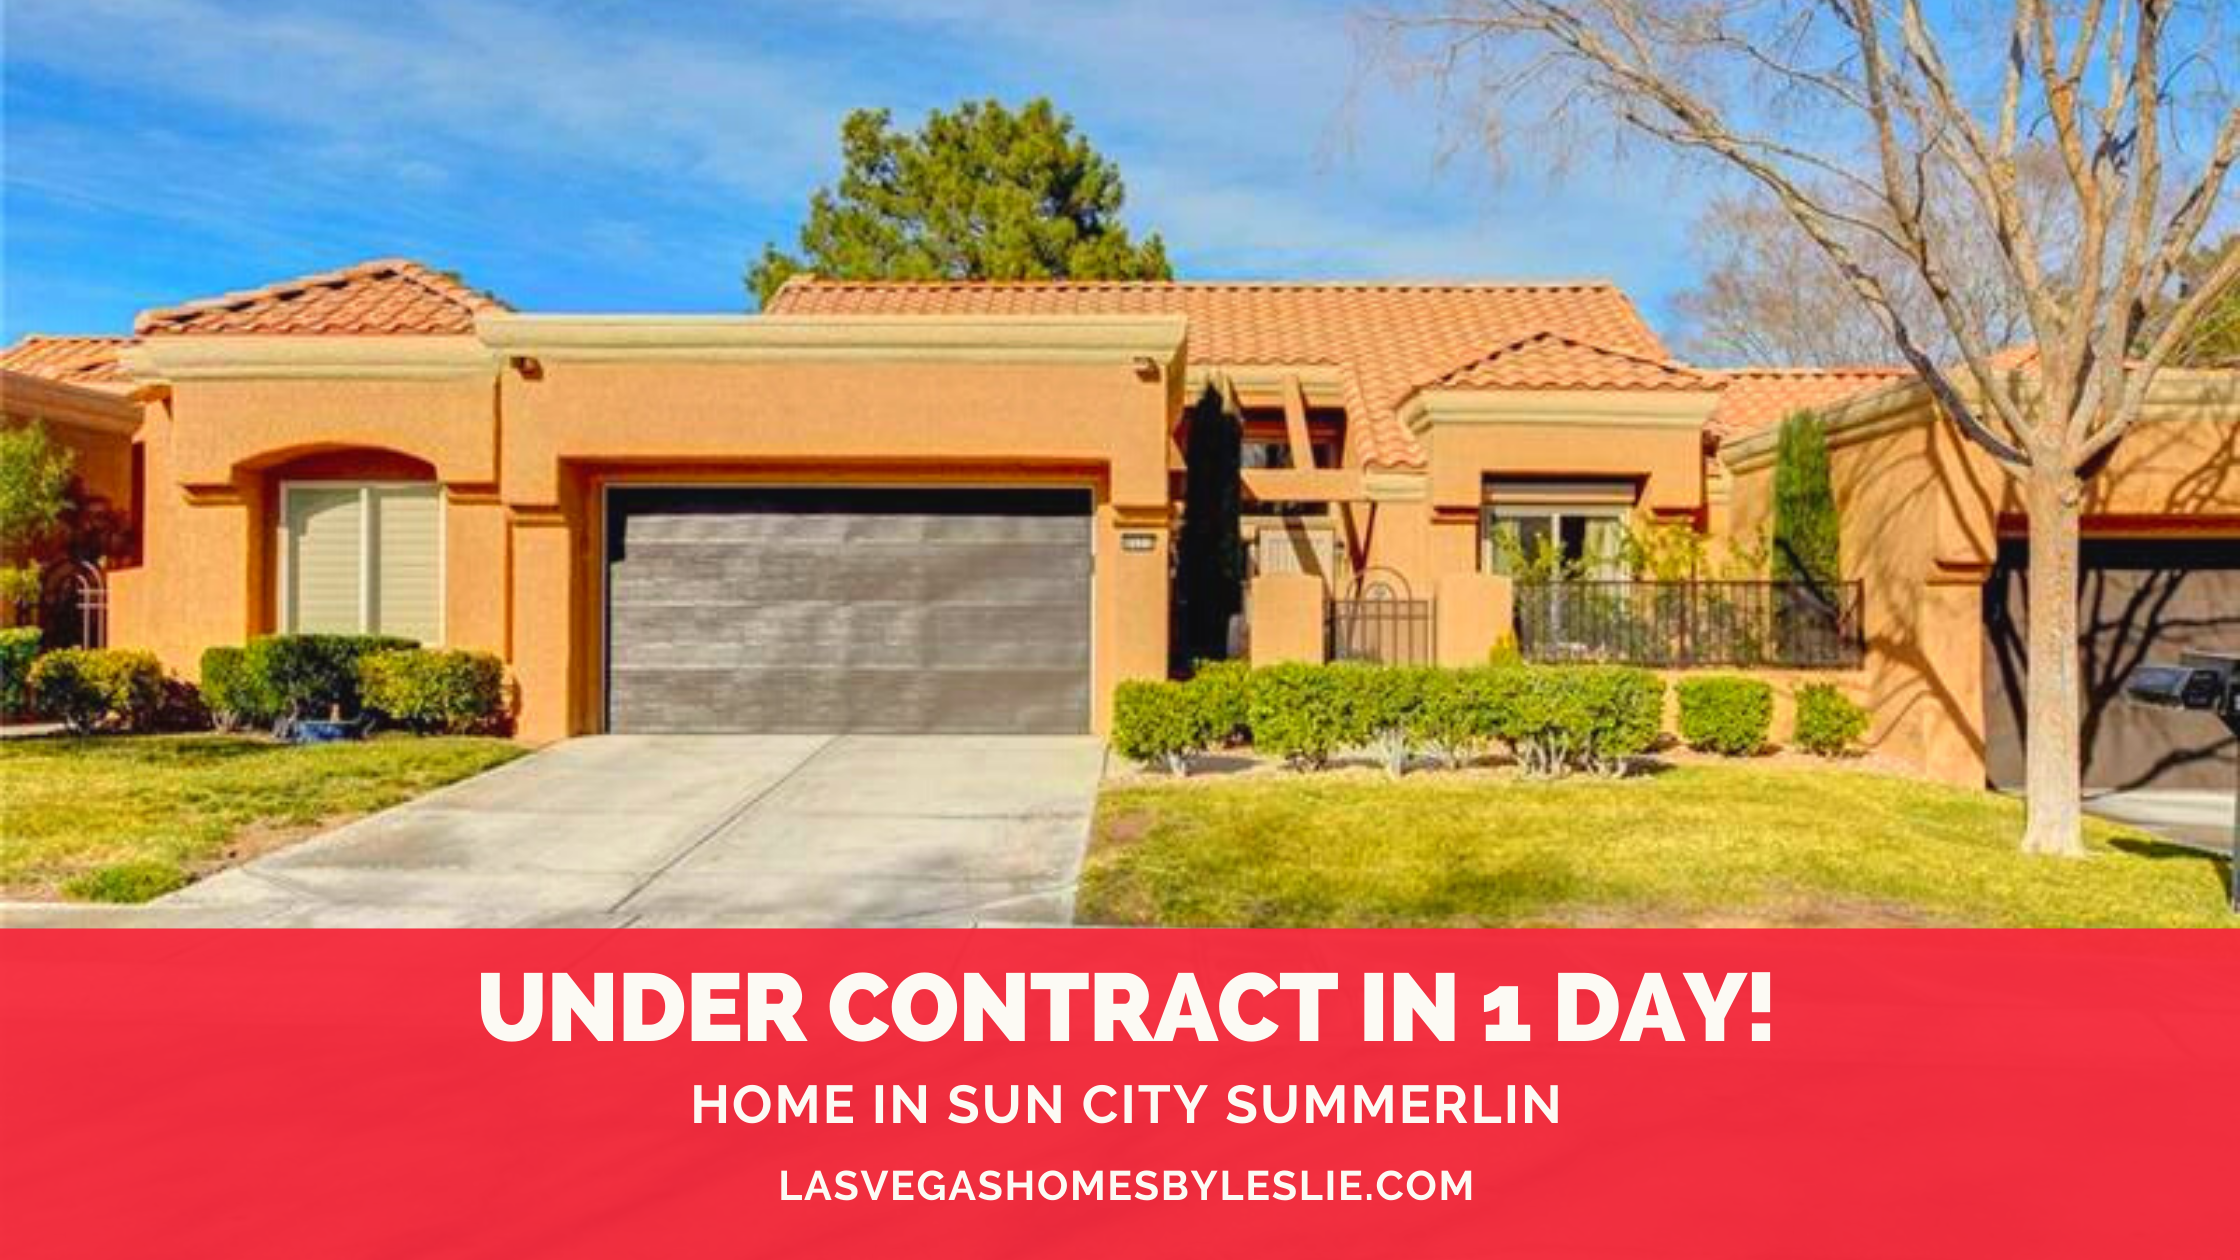 Home in Sun City Summerlin sells in 1 day